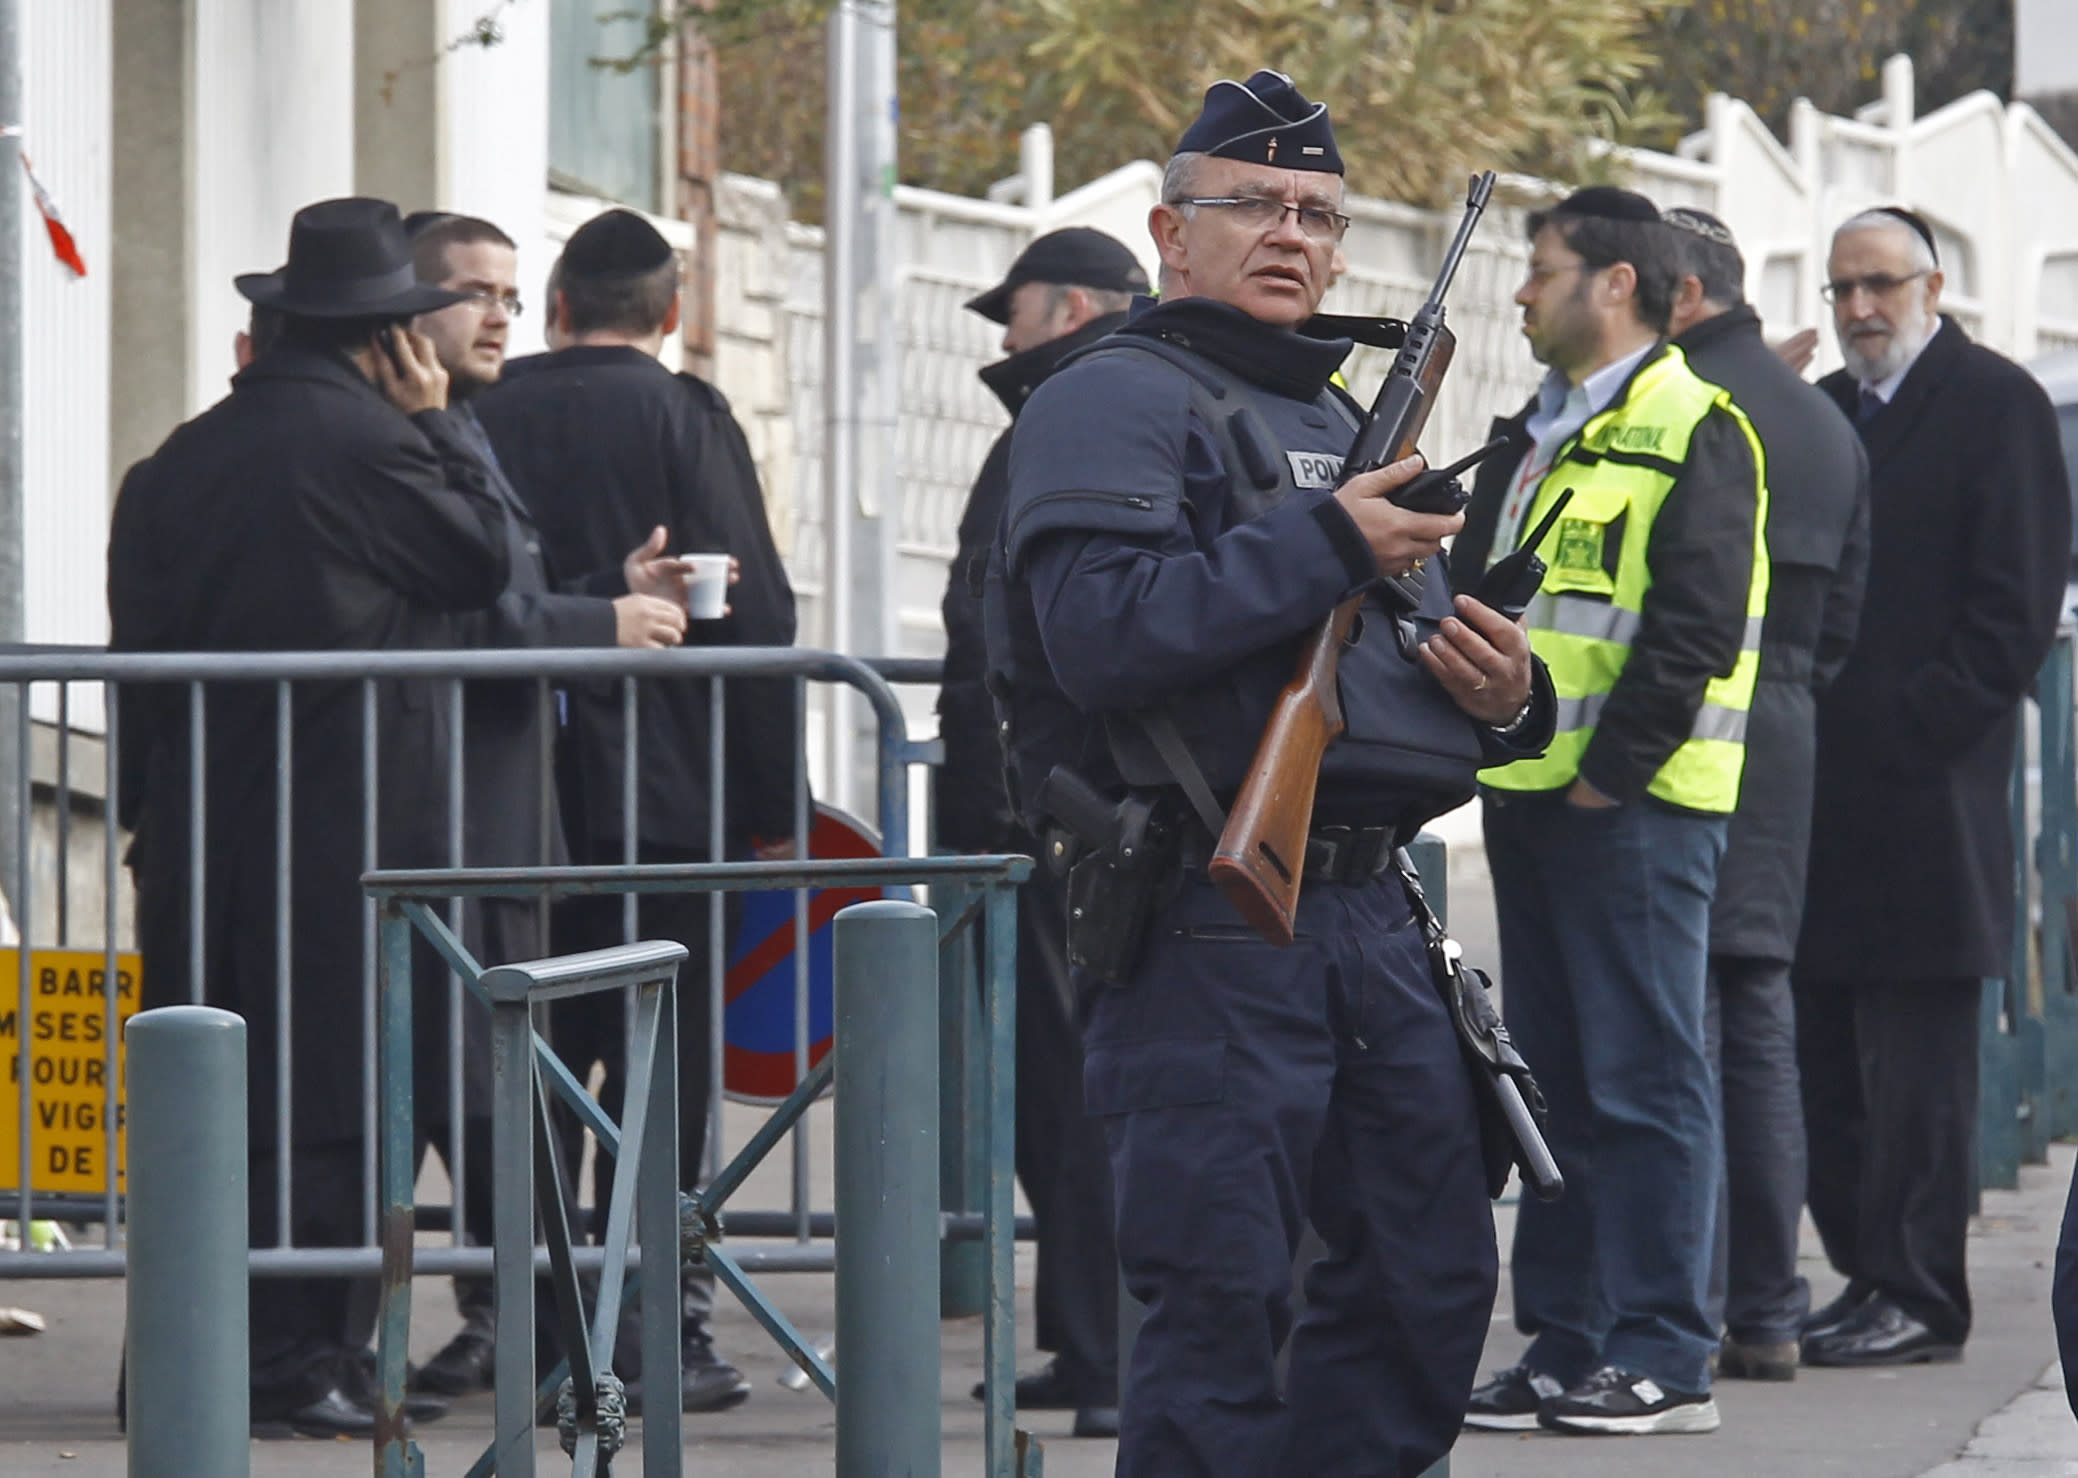 An armed police officer stands guard at the entrance of the Ozar Hatorah Jewish school where a gunman opened fire killing four people in Toulouse, southwestern France, Tuesday, March 20, 2012. A father and his two sons were among four people who died Monday when a gunman opened fire in front of a Jewish school in a city in southwest France, the Toulouse prosecutor said Monday.(AP Photo/Remy de la Mauviniere)